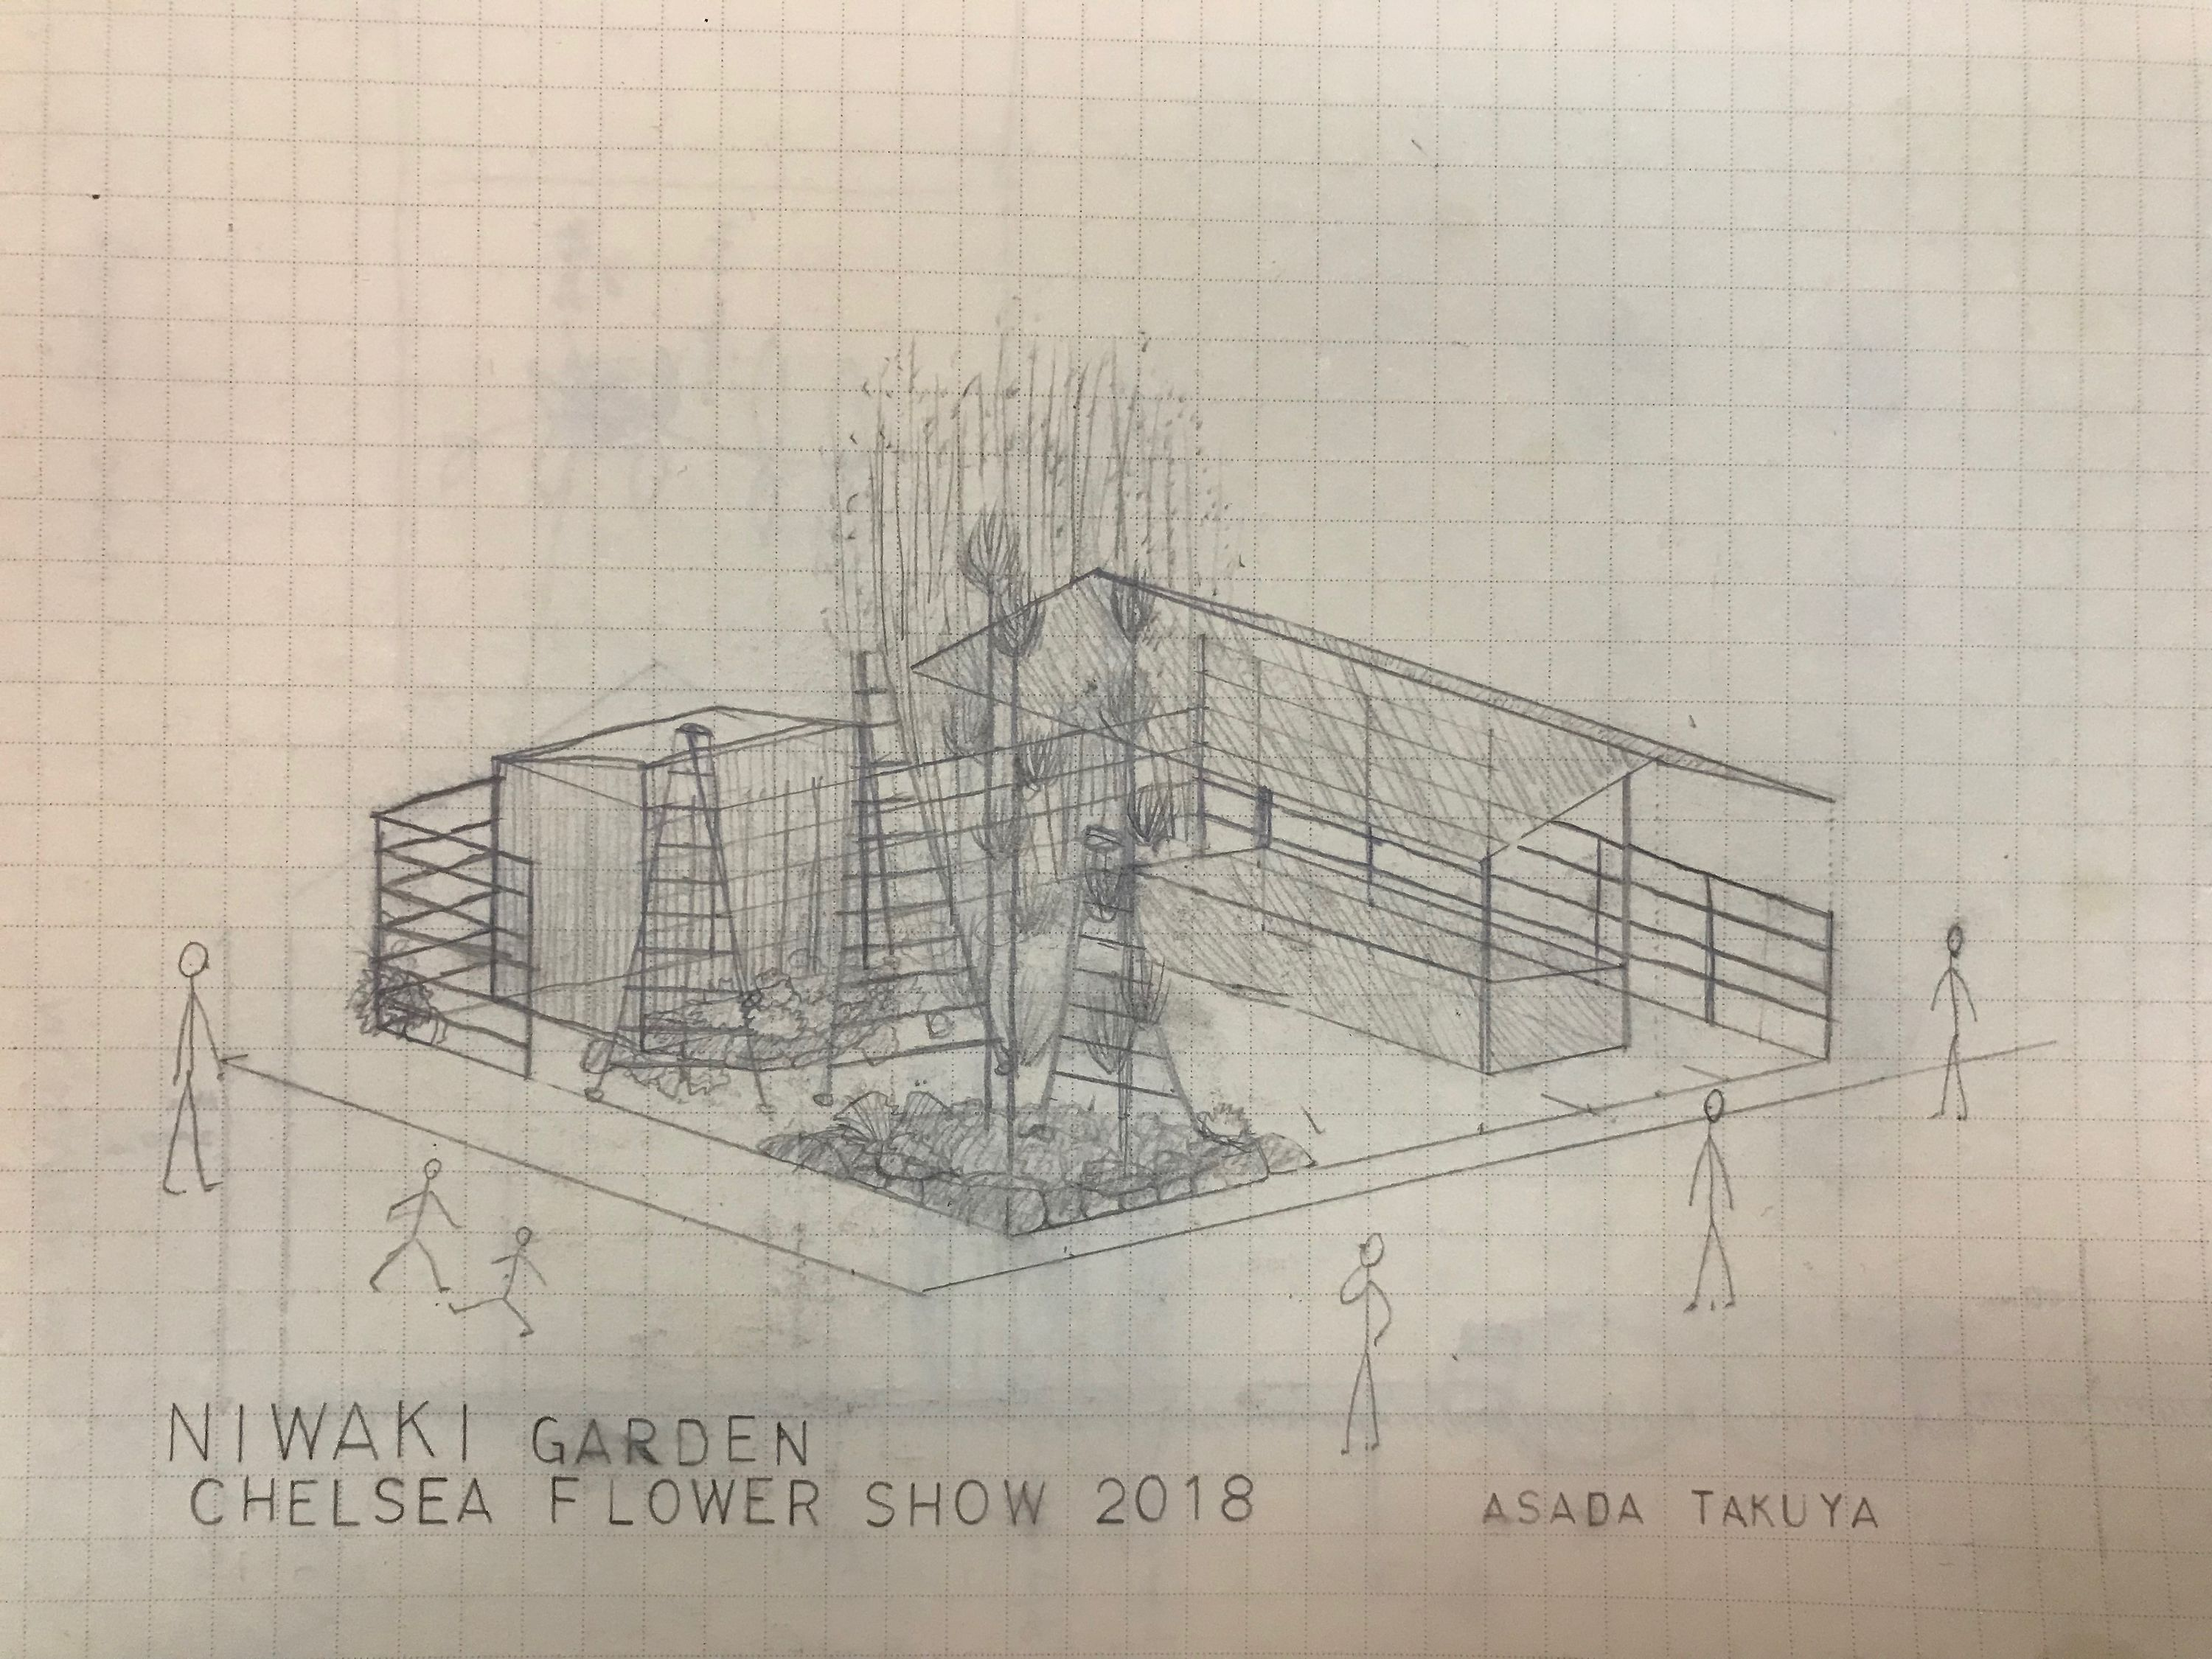 Build Up to the Chelsea Flower Show